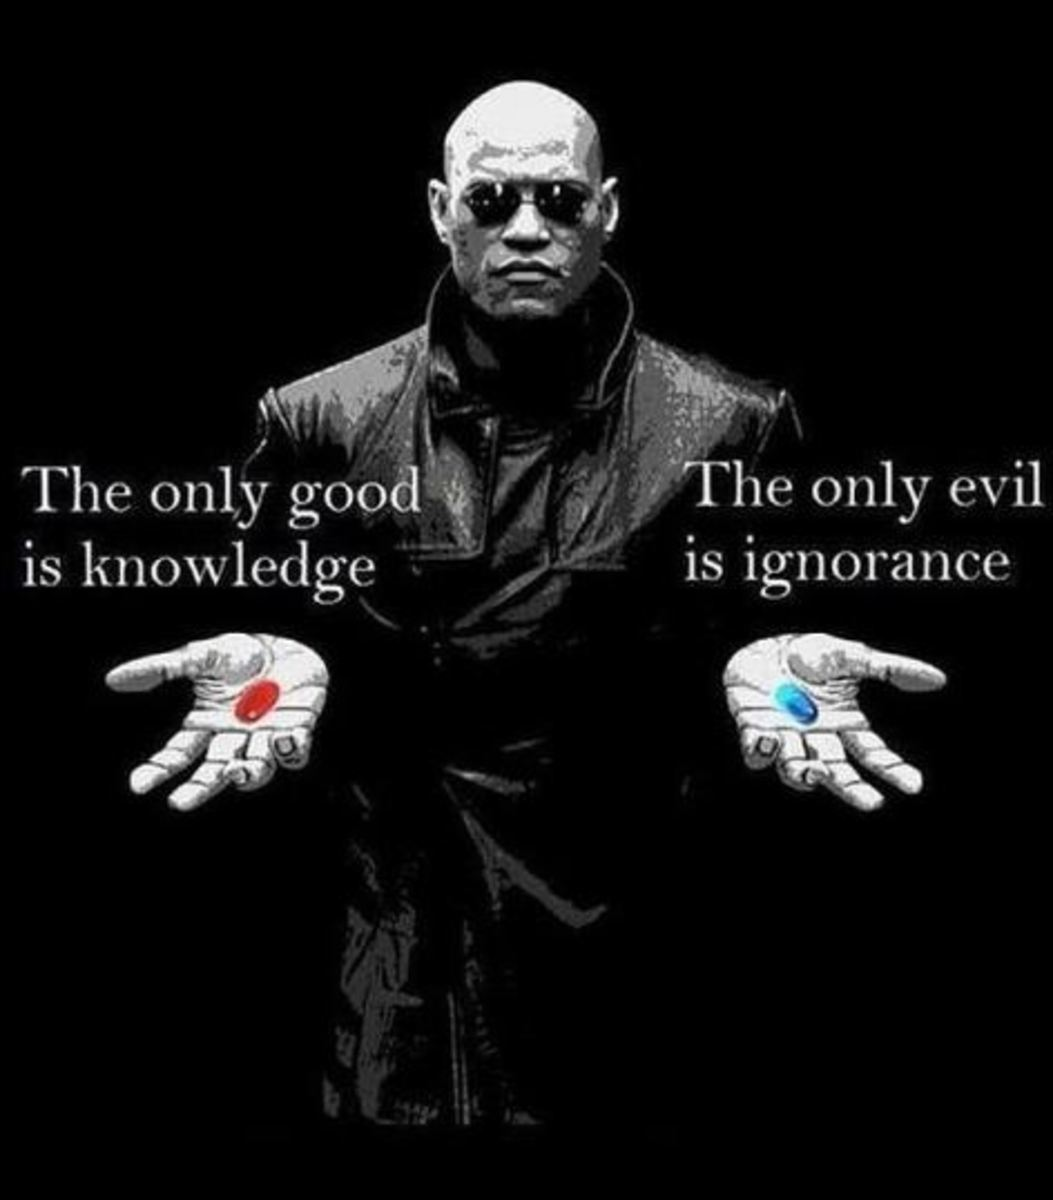 Its a choice to be ignorant. We all accept the consequences of our choices